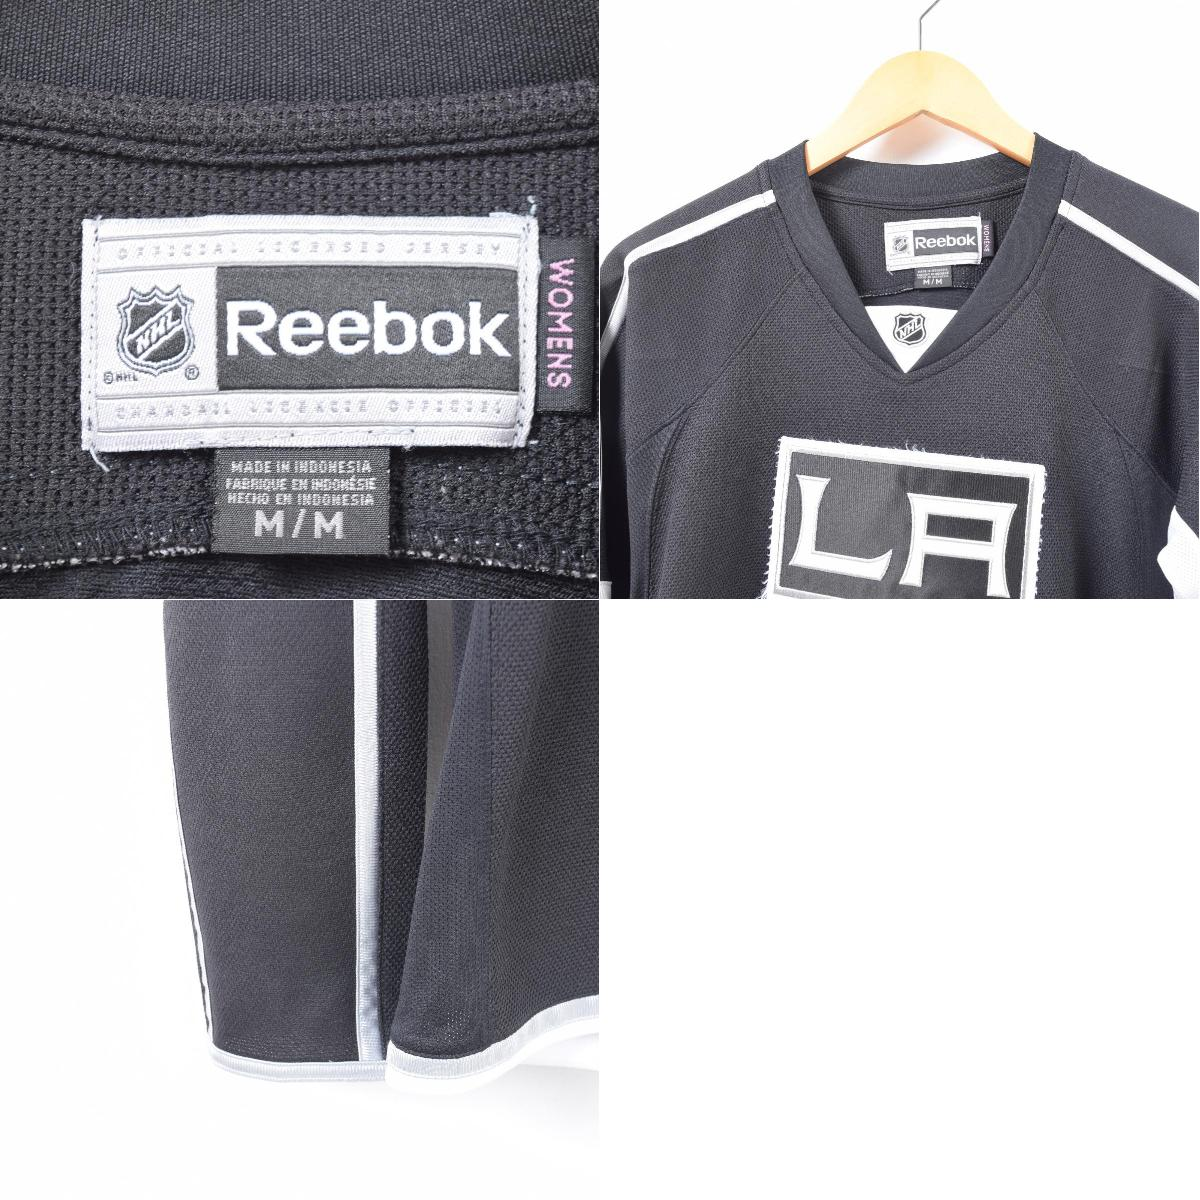 d5e666230 Reebok Reebok NHL LOS ANGELES KINGS Los Angeles Kings game shirt replica  uniform Lady s M  waq7205